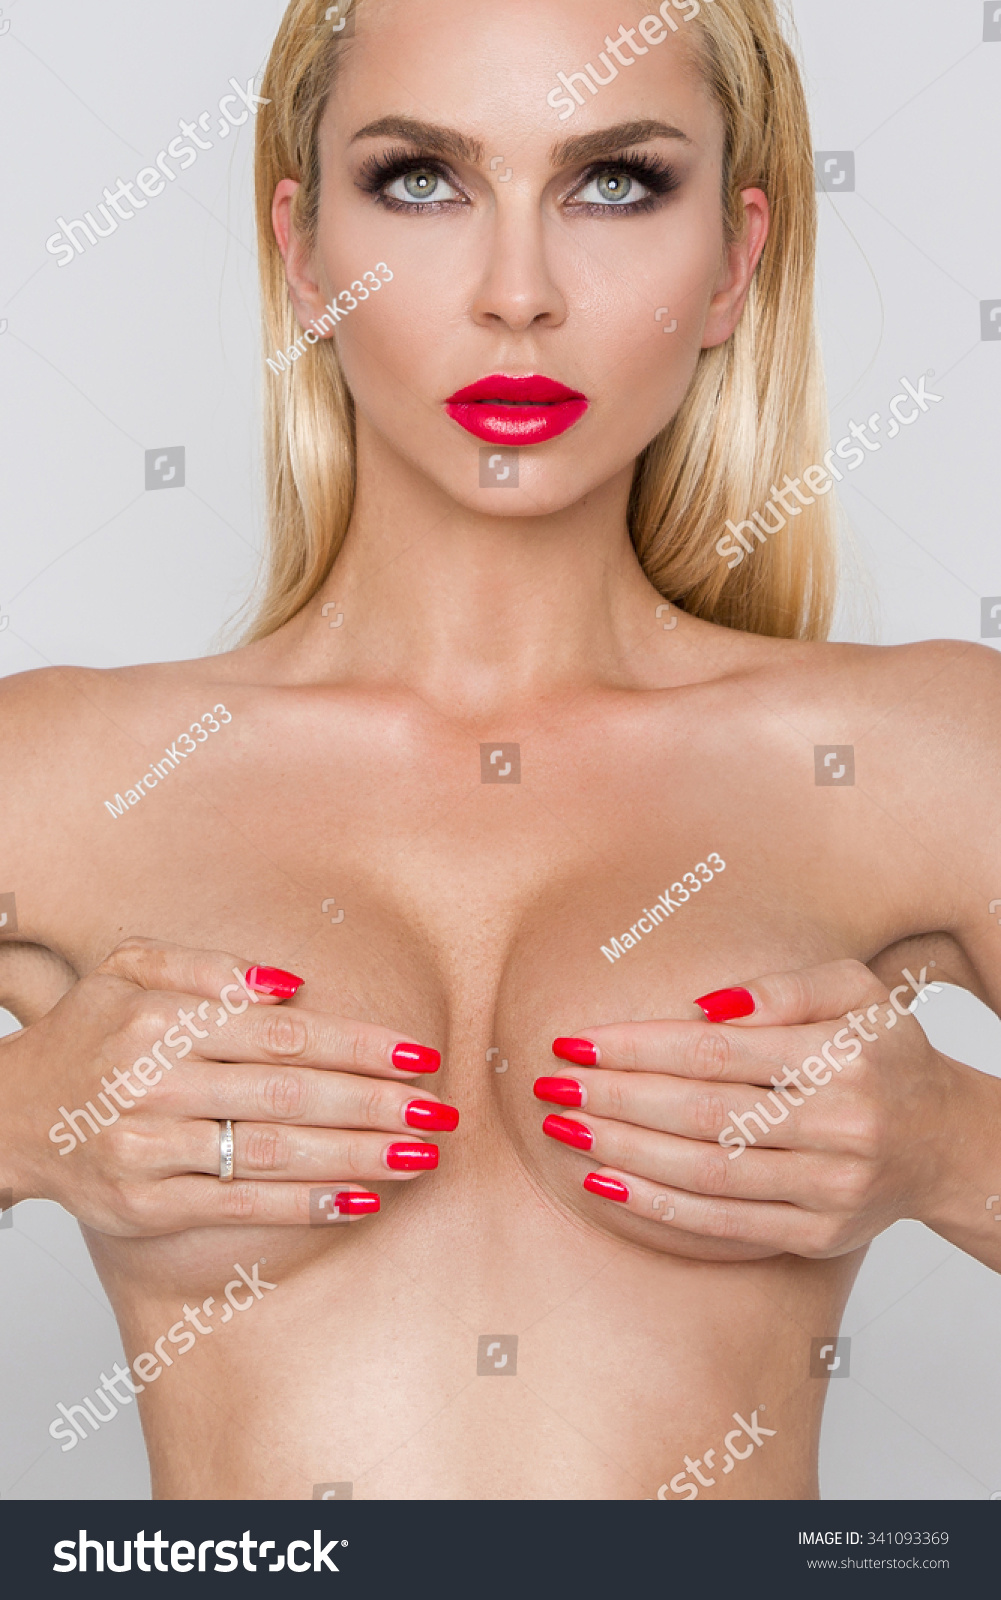 naked big breast women